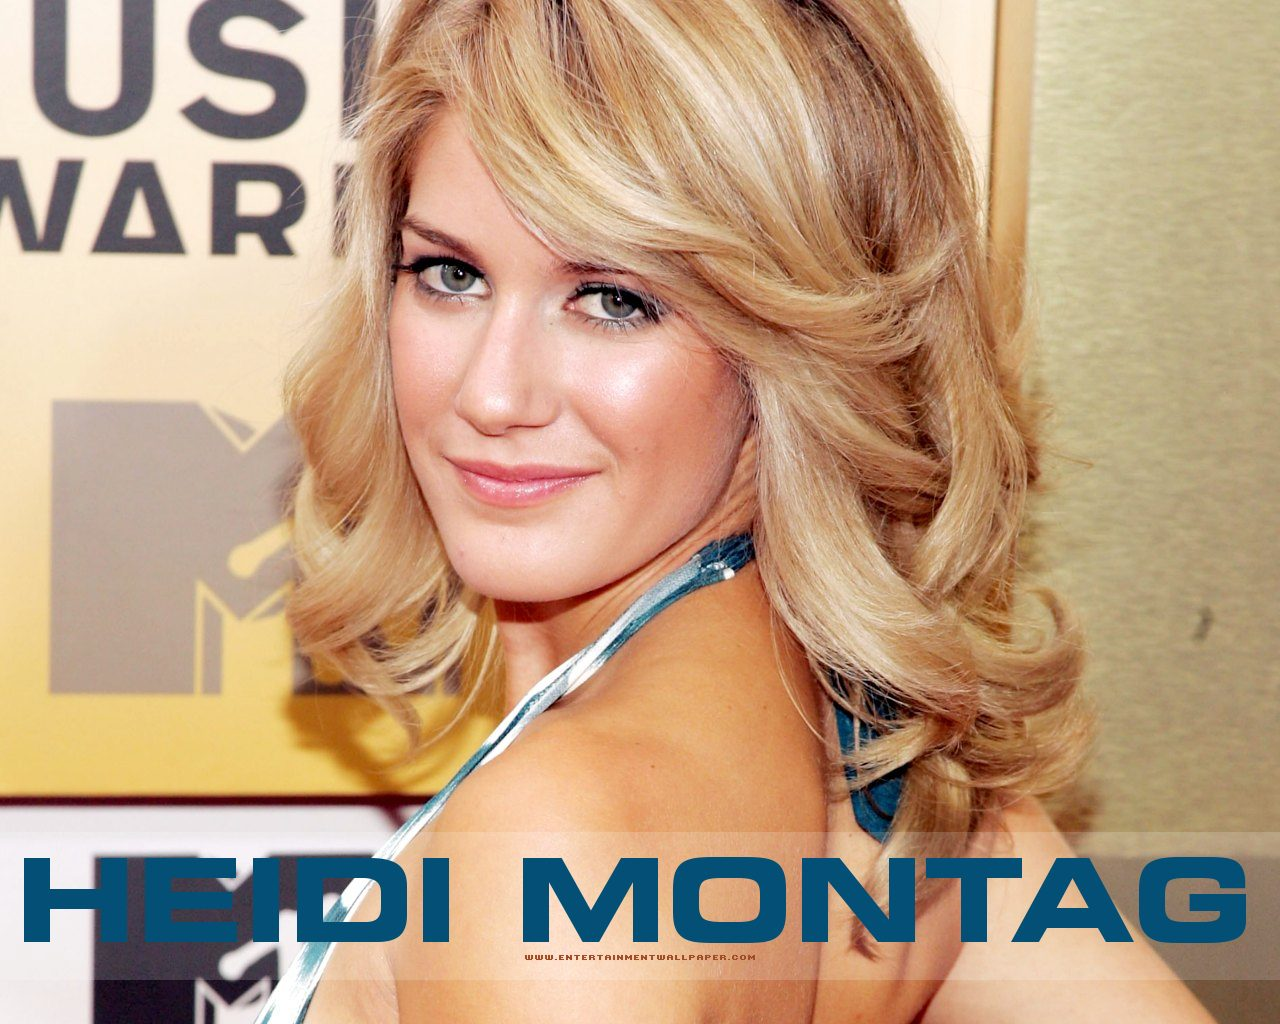 Cute Baby Kiss Wallpaper Lovely Wallpapers Heidi Montag Hd Wallpapers 2012